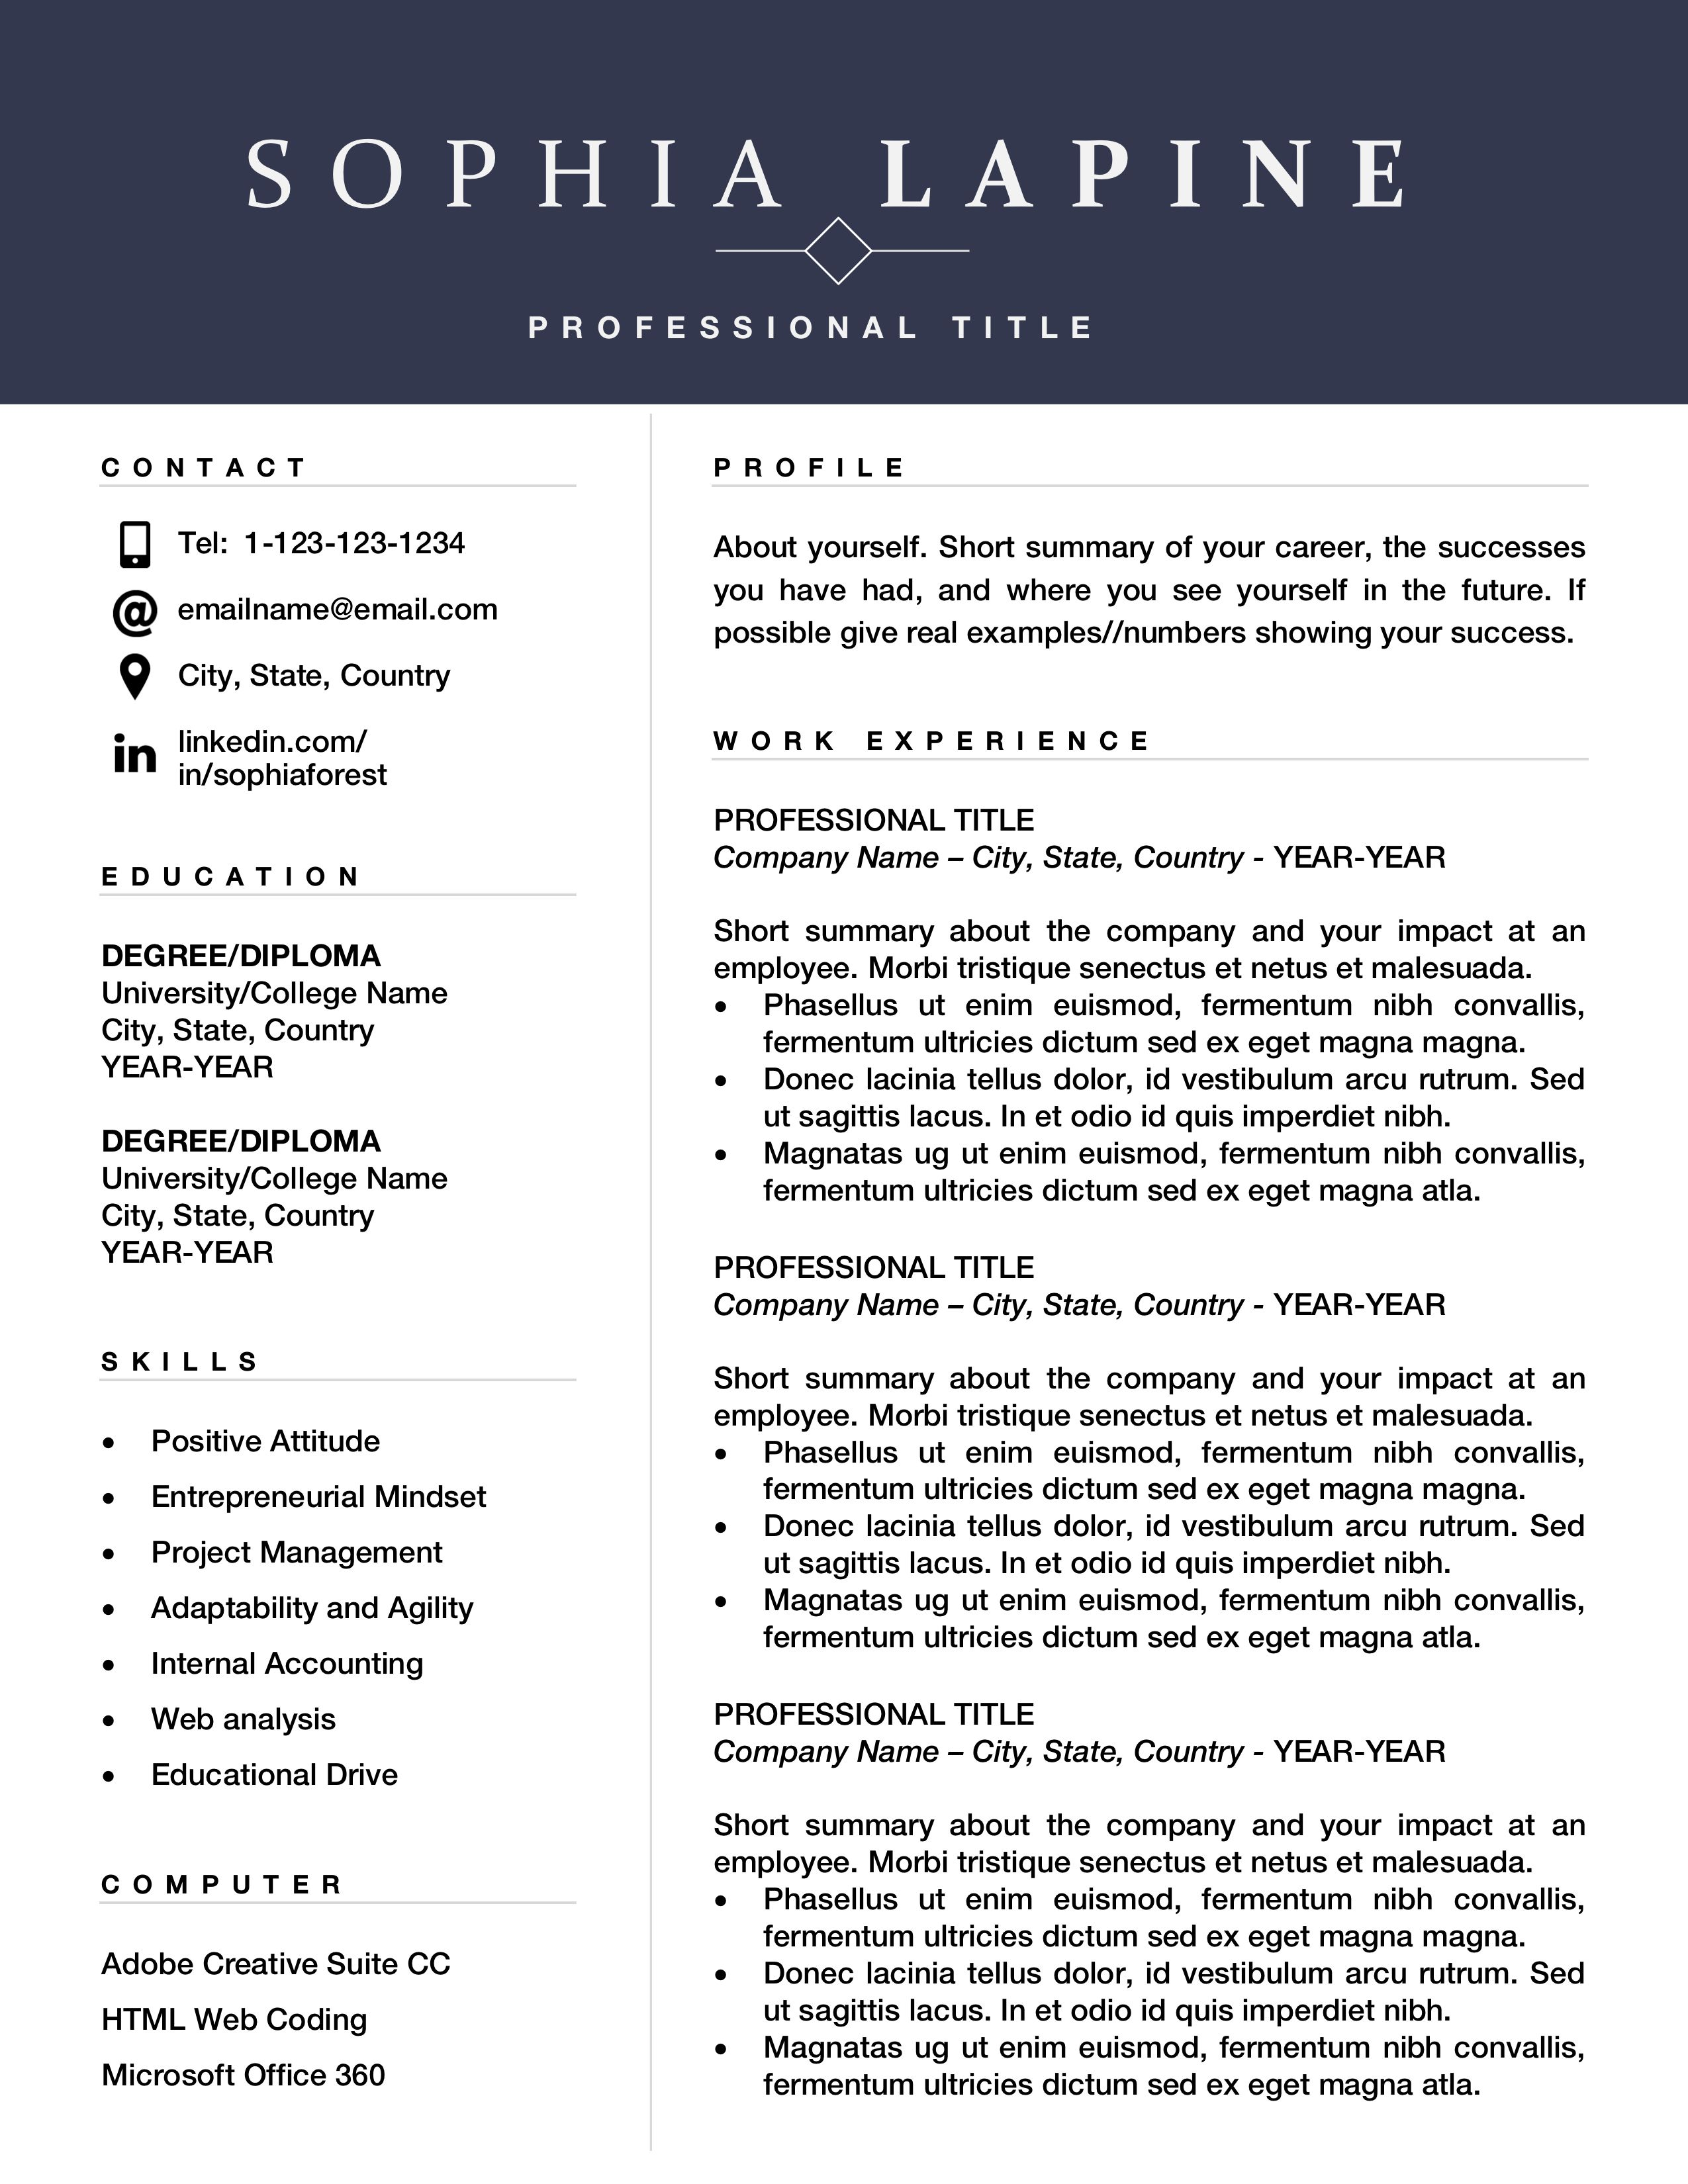 Professional Resume Template Design Editable Resume For Office Admin Or Marketing Executive Resume Design With Cover Letter Mac And Pc Resume Template Word Resume Template Professional Resume Template